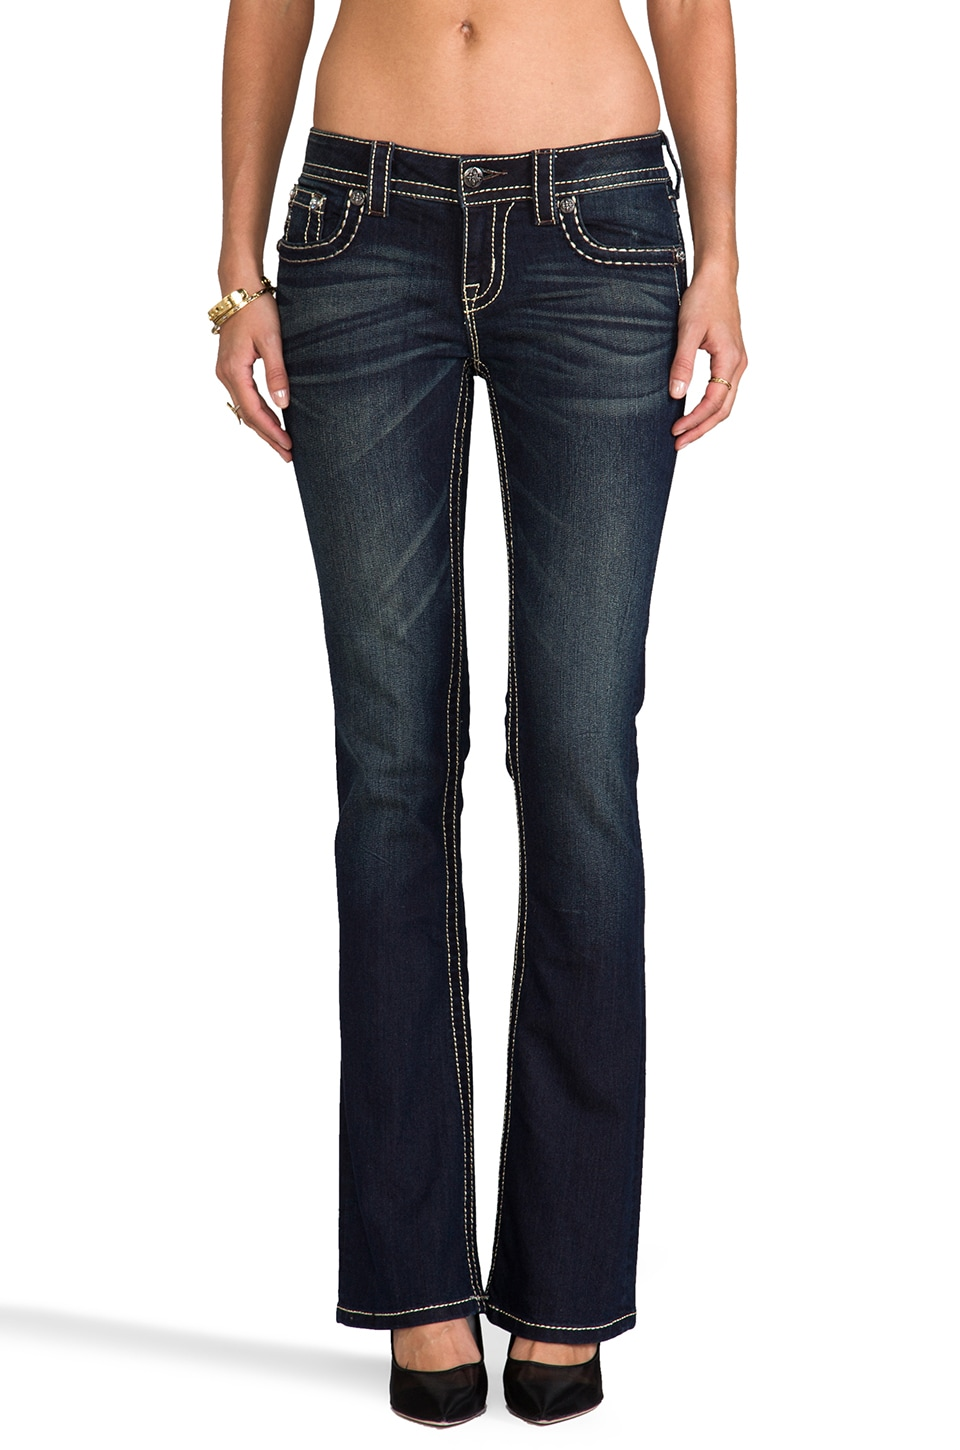 Miss Me Jeans Bootcut in DK 239